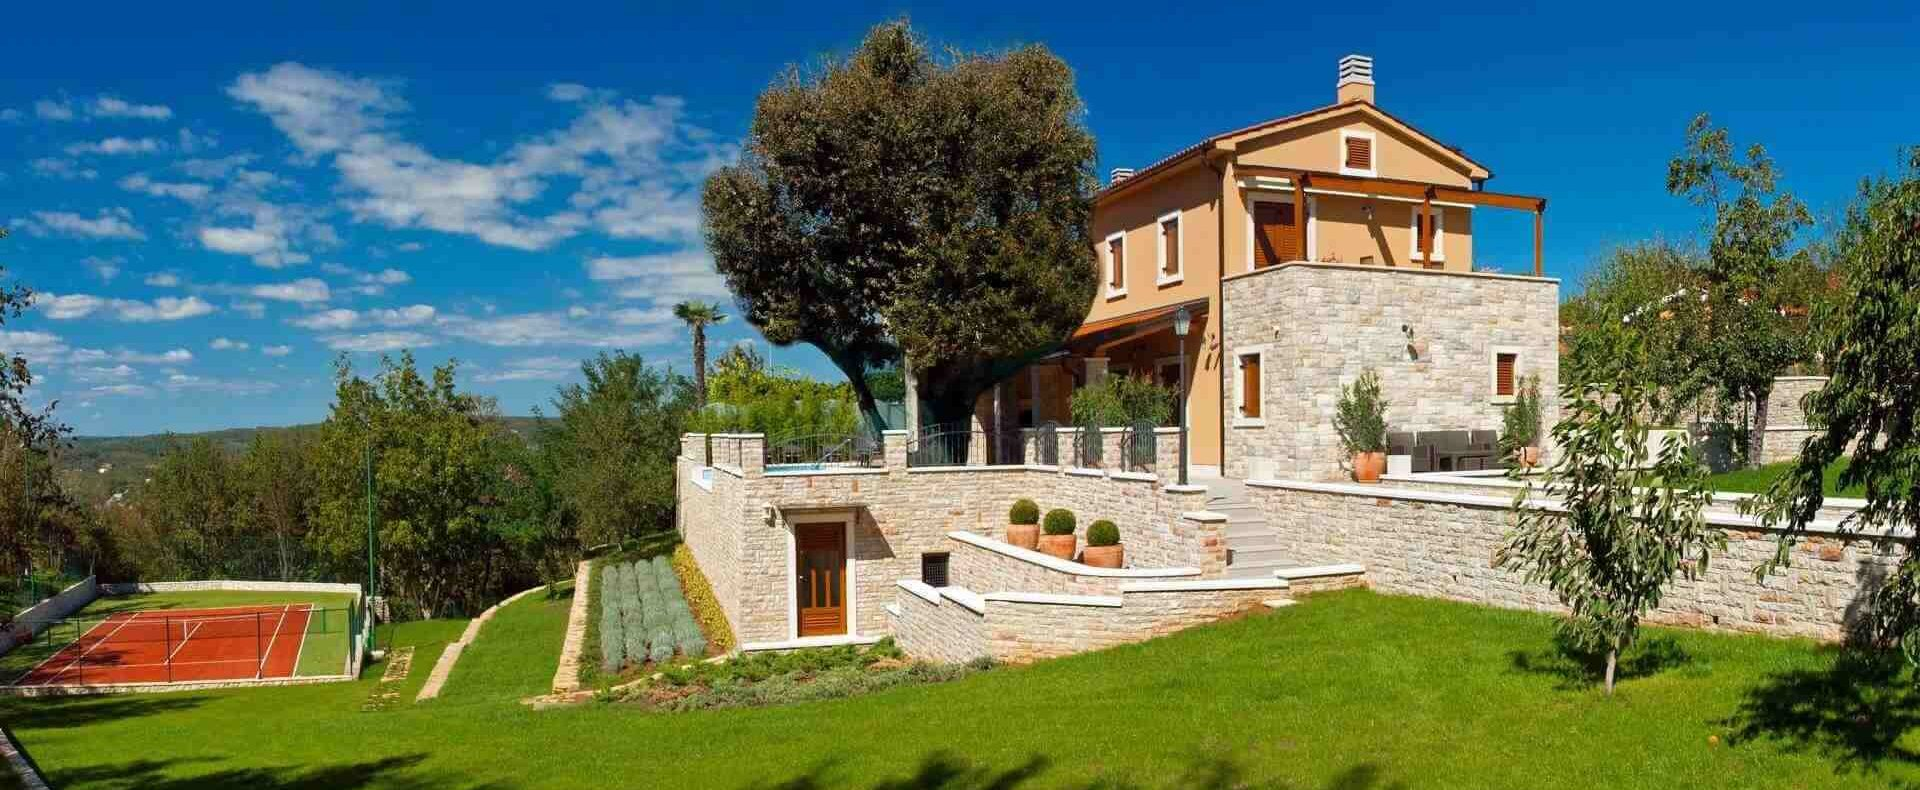 Private Villas in Istria Croatia